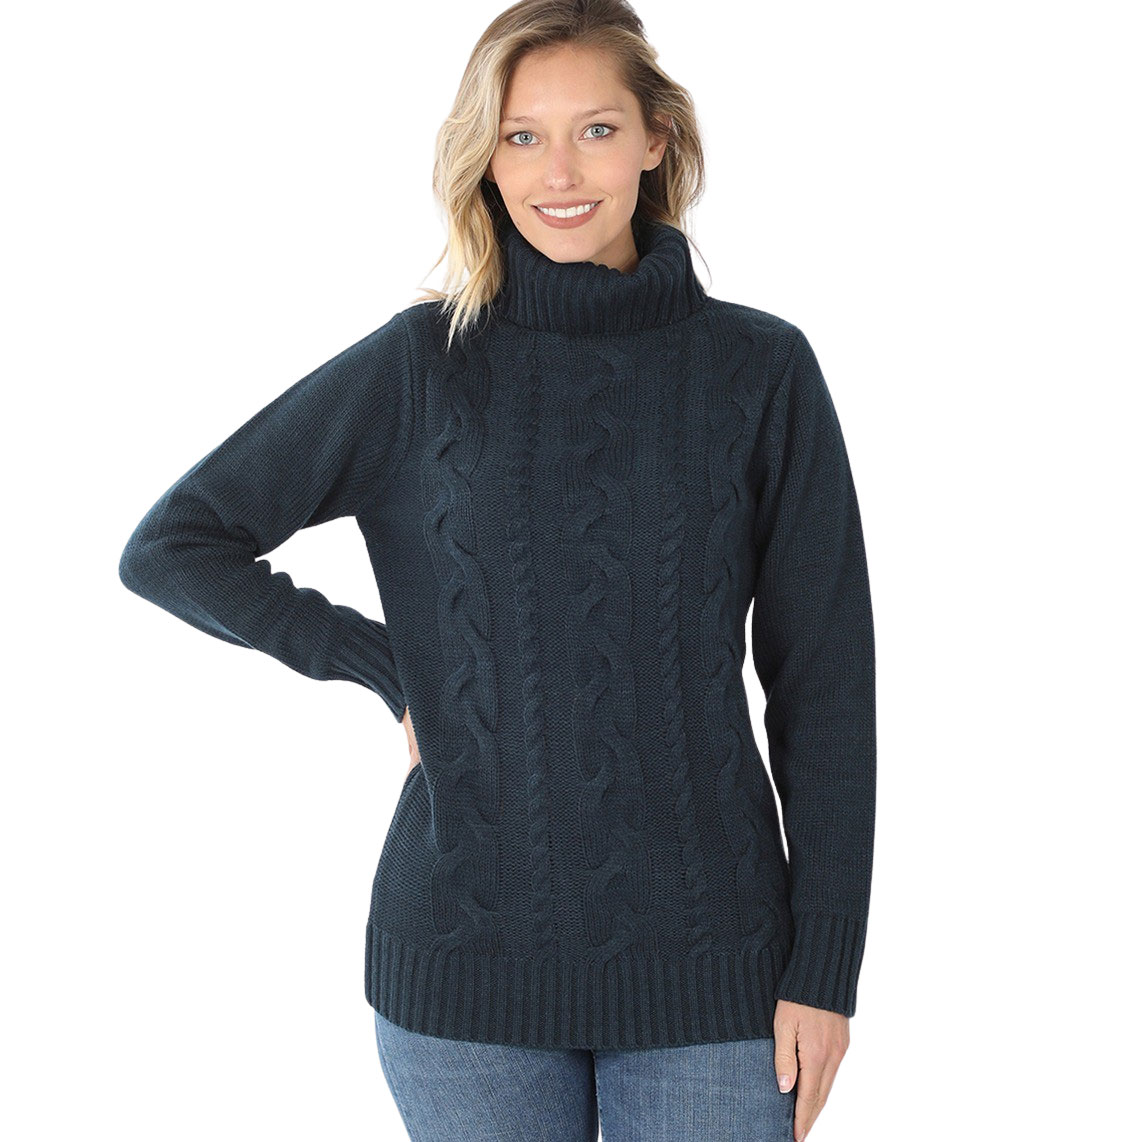 Sweater -  Braided Front Turtleneck 21023 - MIDNIGHT - Braided Front Turtleneck 21023